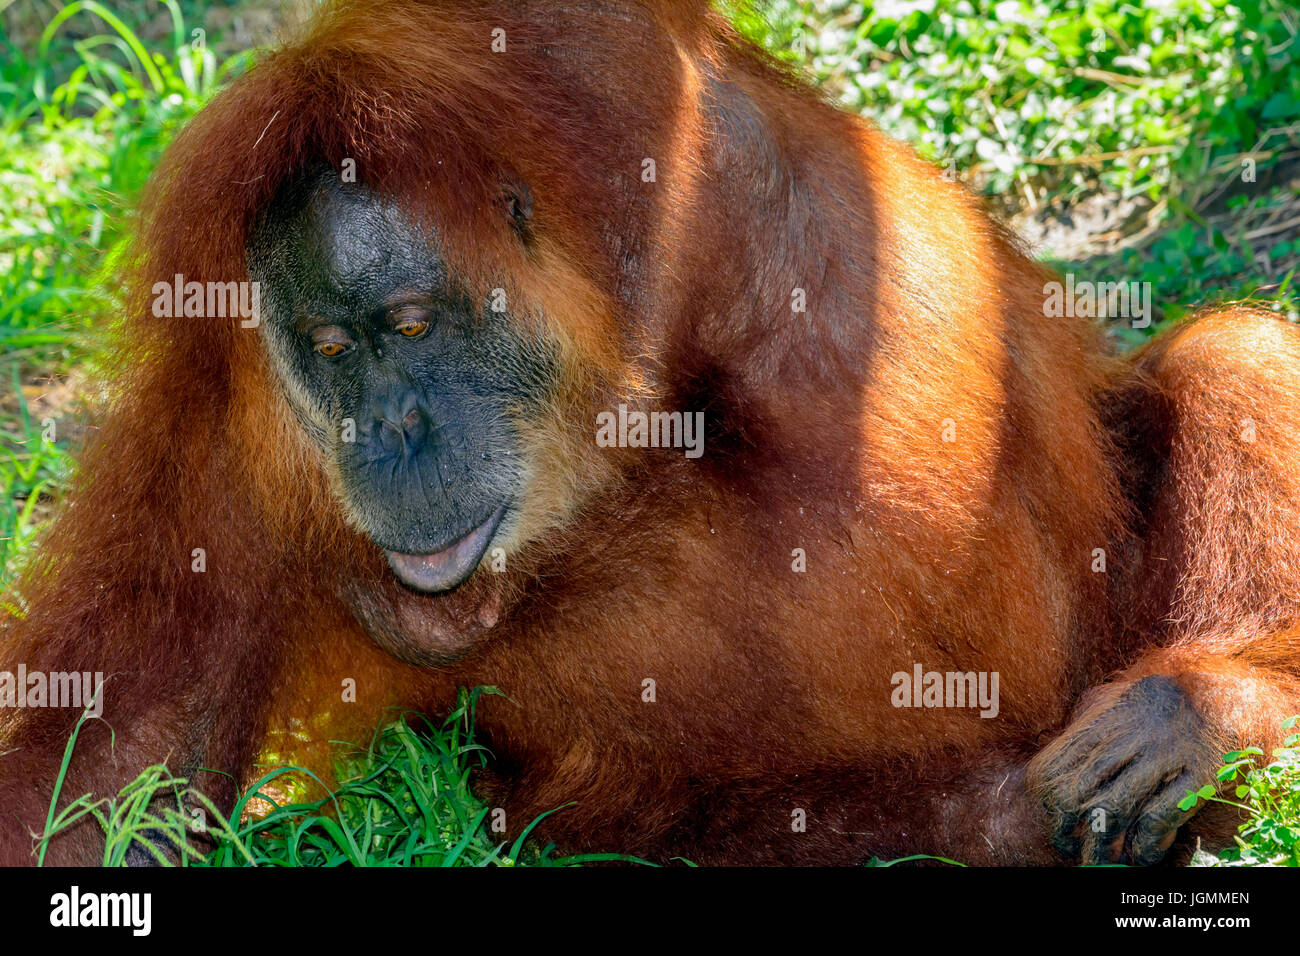 Orangutan, orang-utan, orangutang, or orang-utang, Asian great apes native to Indonesia and Malaysia, in the rainforests Stock Photo